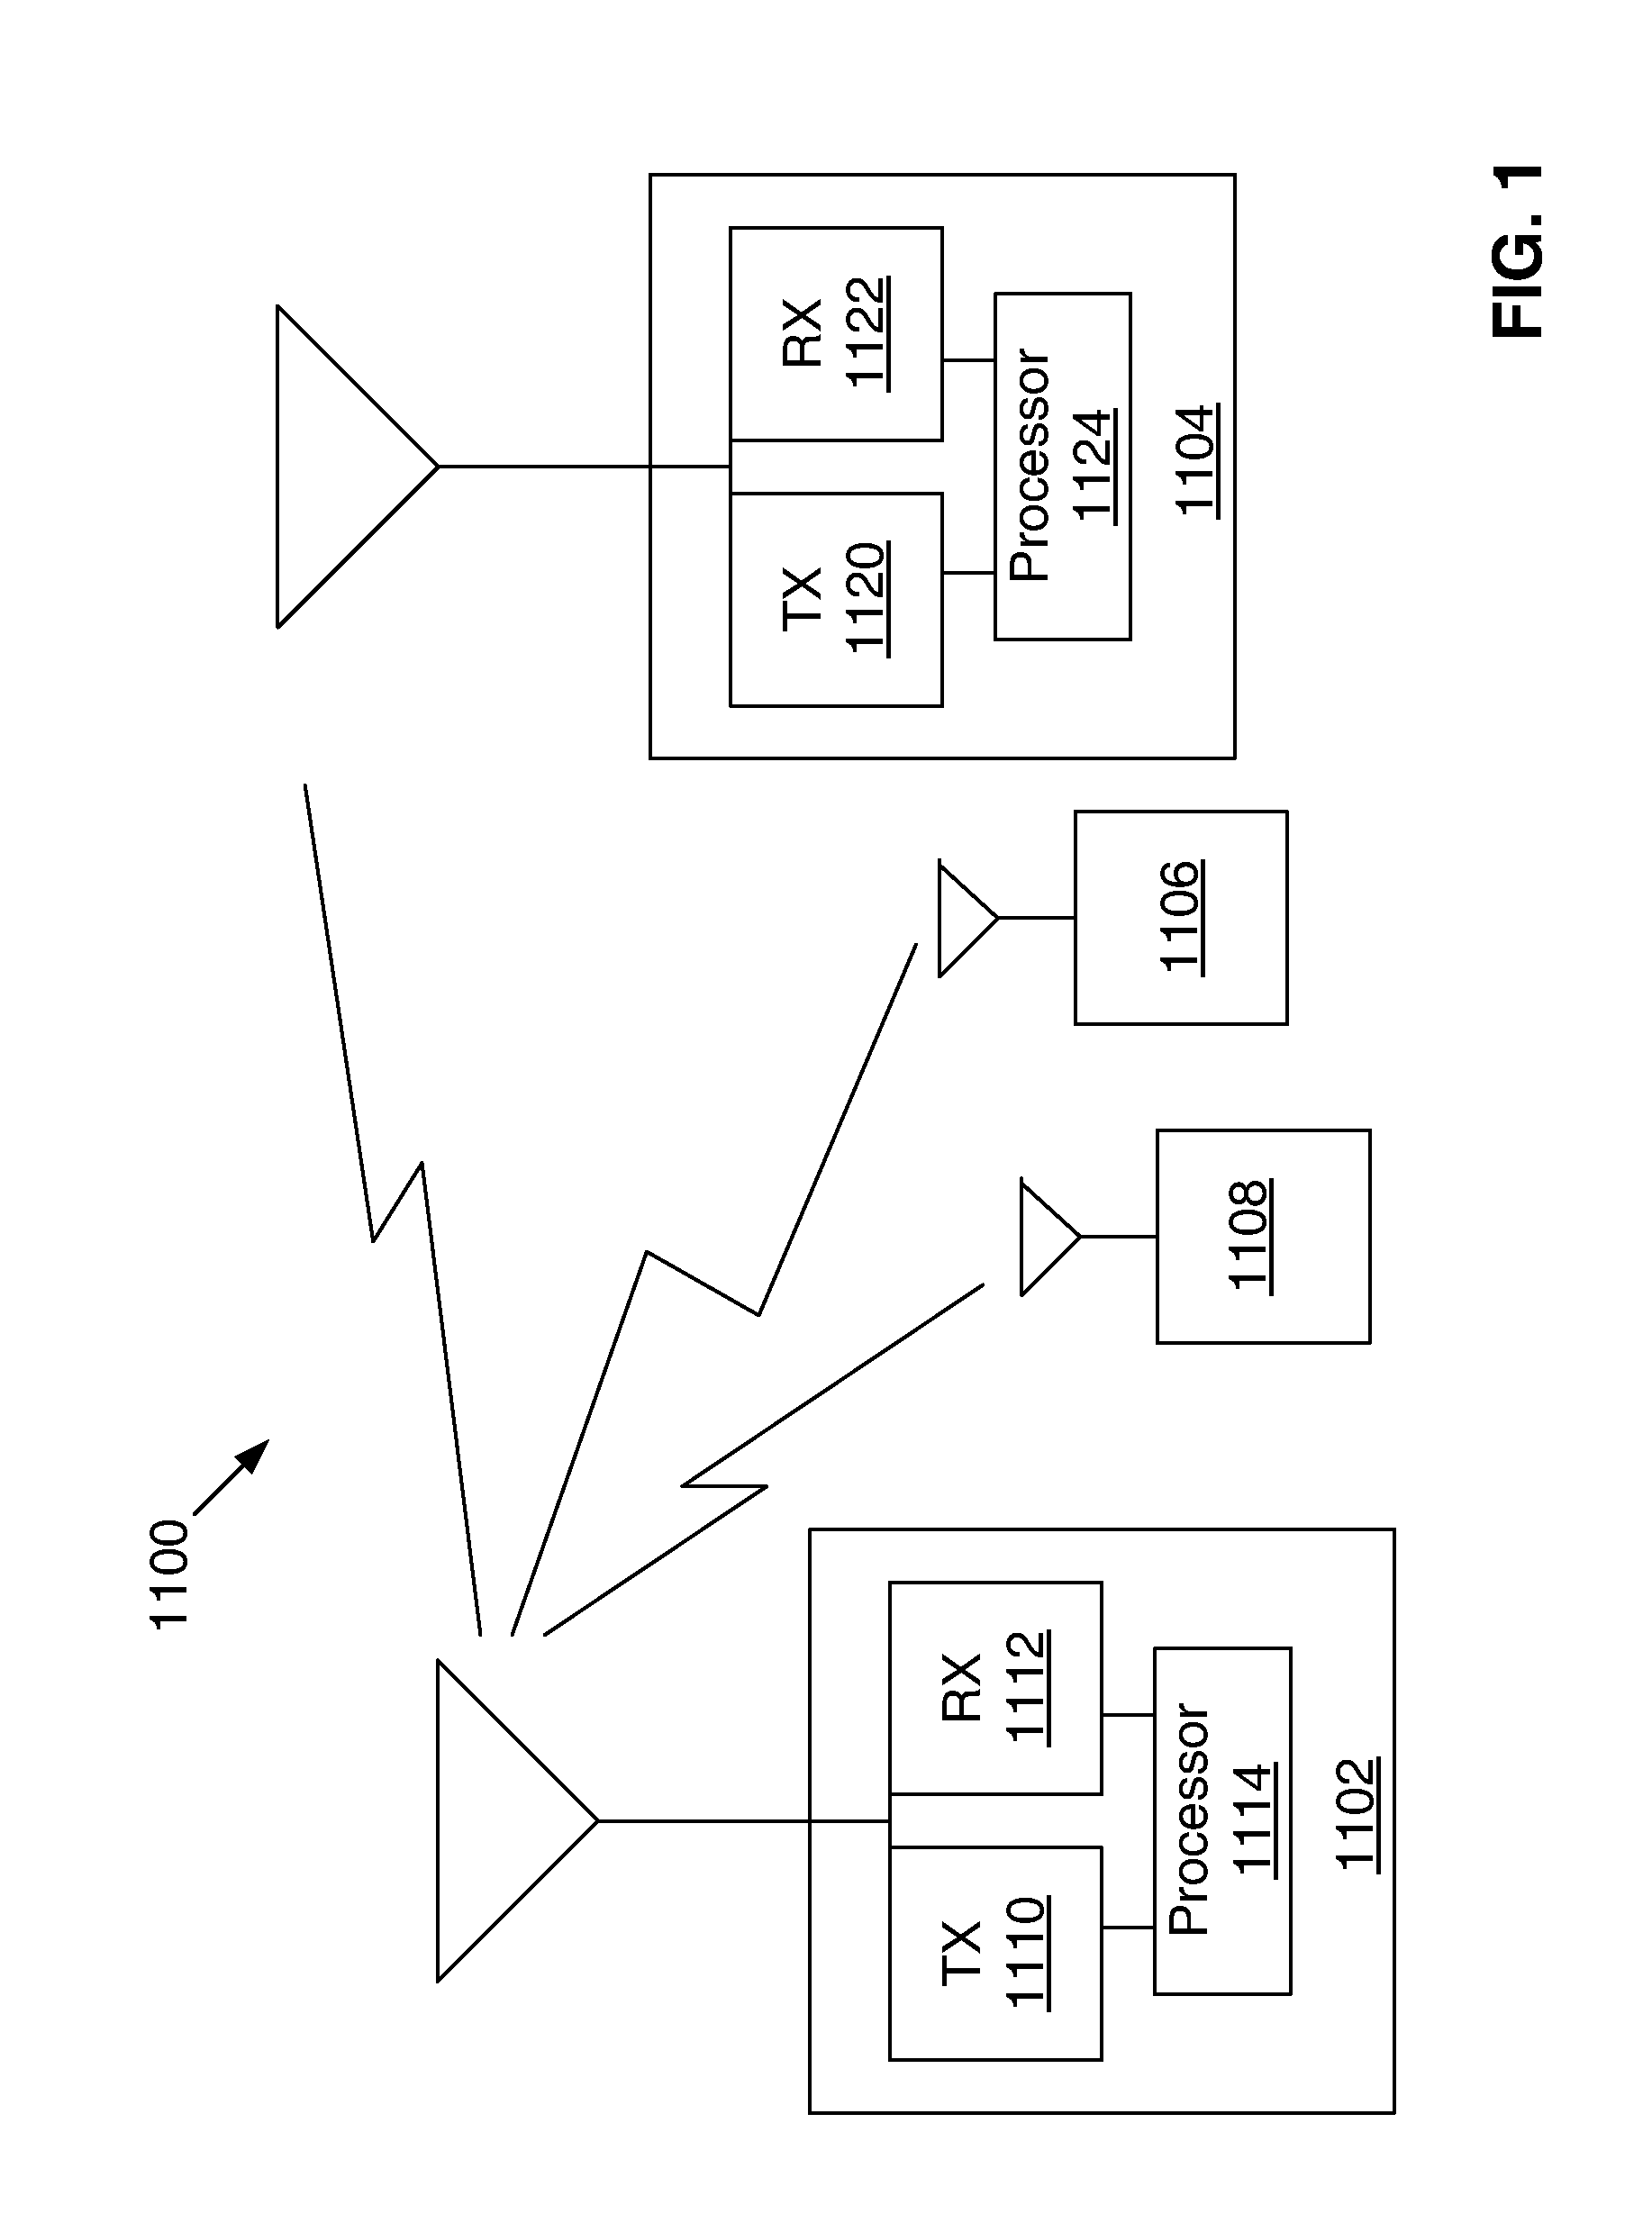 Circuit Diagrams Besides R S 1 4 Wiring Diagram Additionally Sanyo